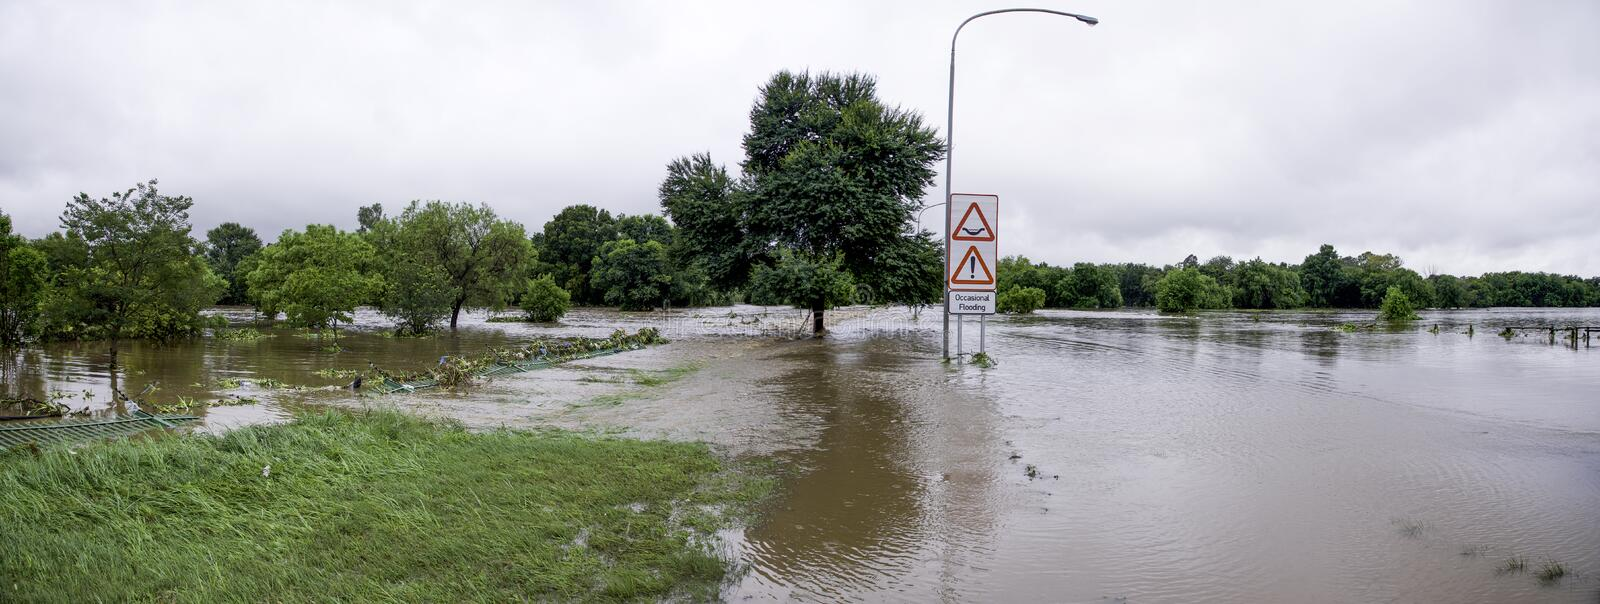 Natural disaster that took place in South Africa. A panoramic image showing the flooding of a public road in Centurion, South Africa.  The Hennops River burst royalty free stock photography